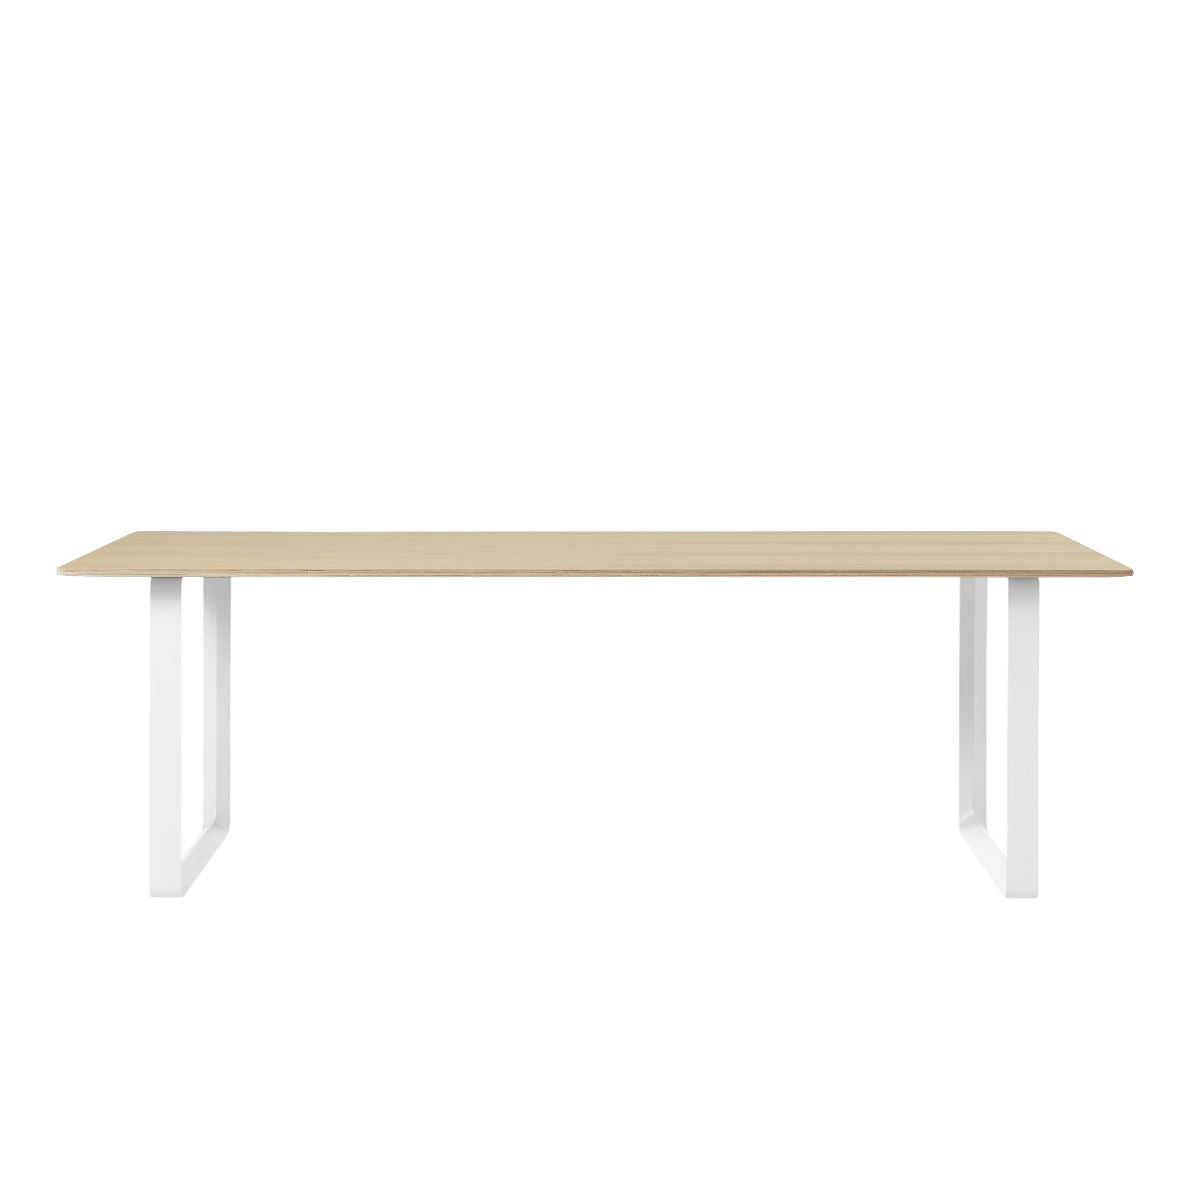 Muuto 70/70 table 225 * 90 oak white